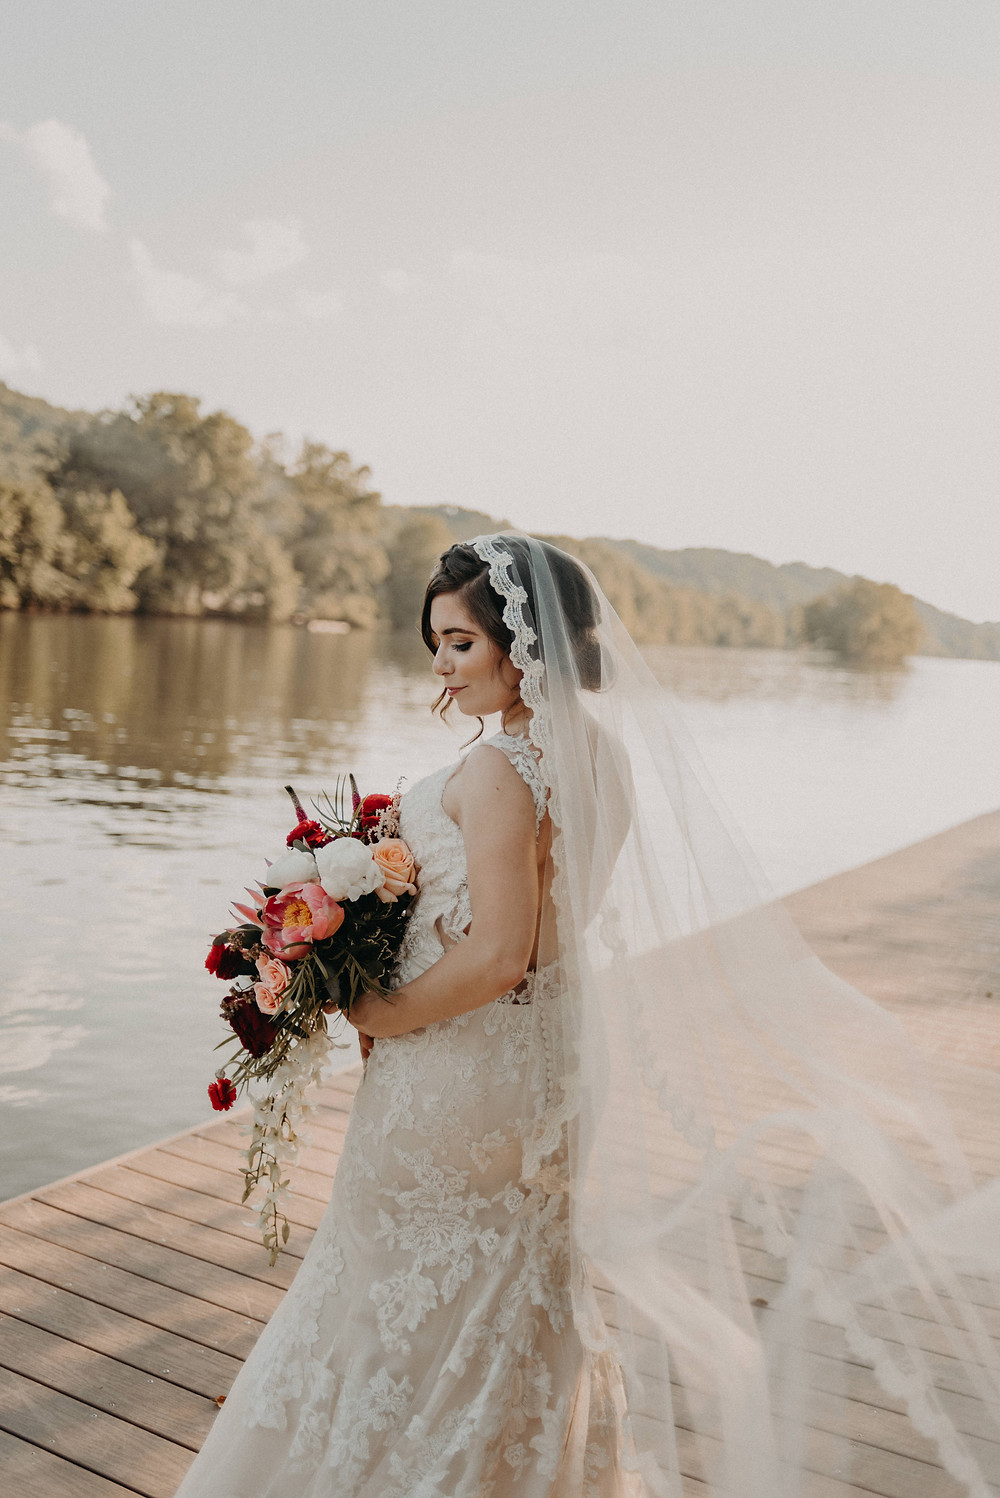 Beautiful bride in a lace dress and colorful bouquet by the river